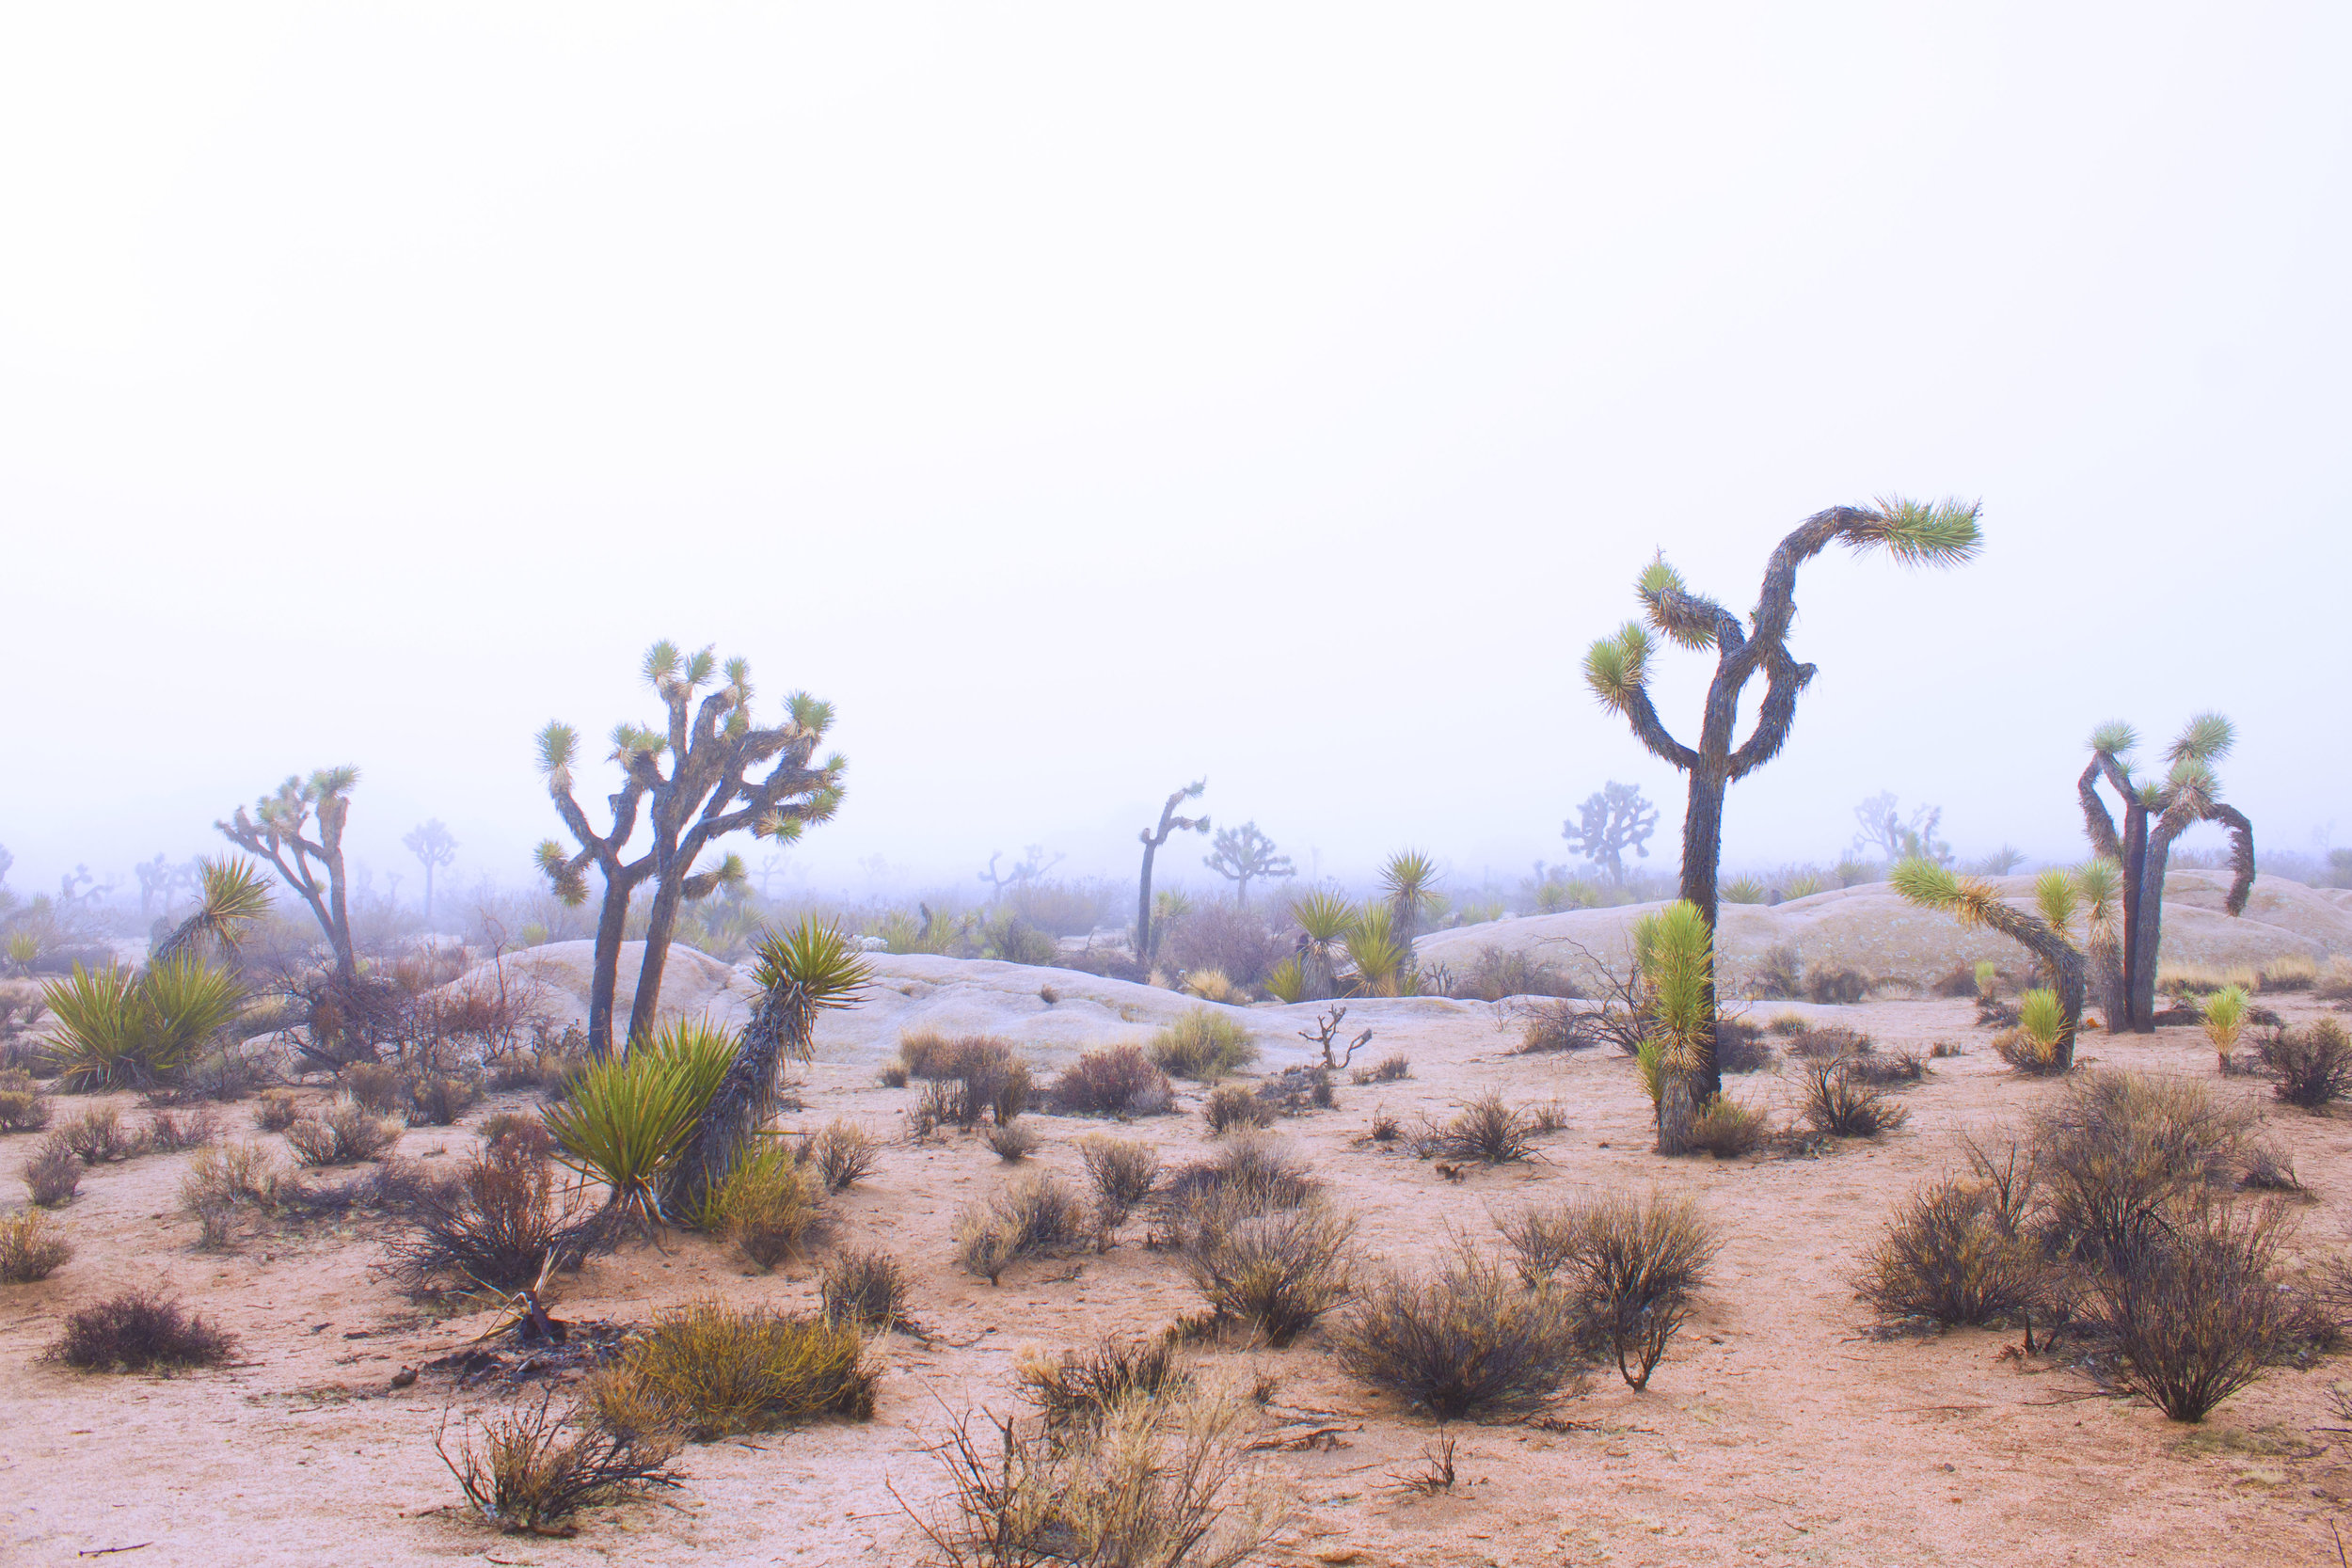 """Photo I took while camping at Joshua Tree National Park, the location for the """"Get Lost, Do Art"""" Case of the Nomads Residency"""